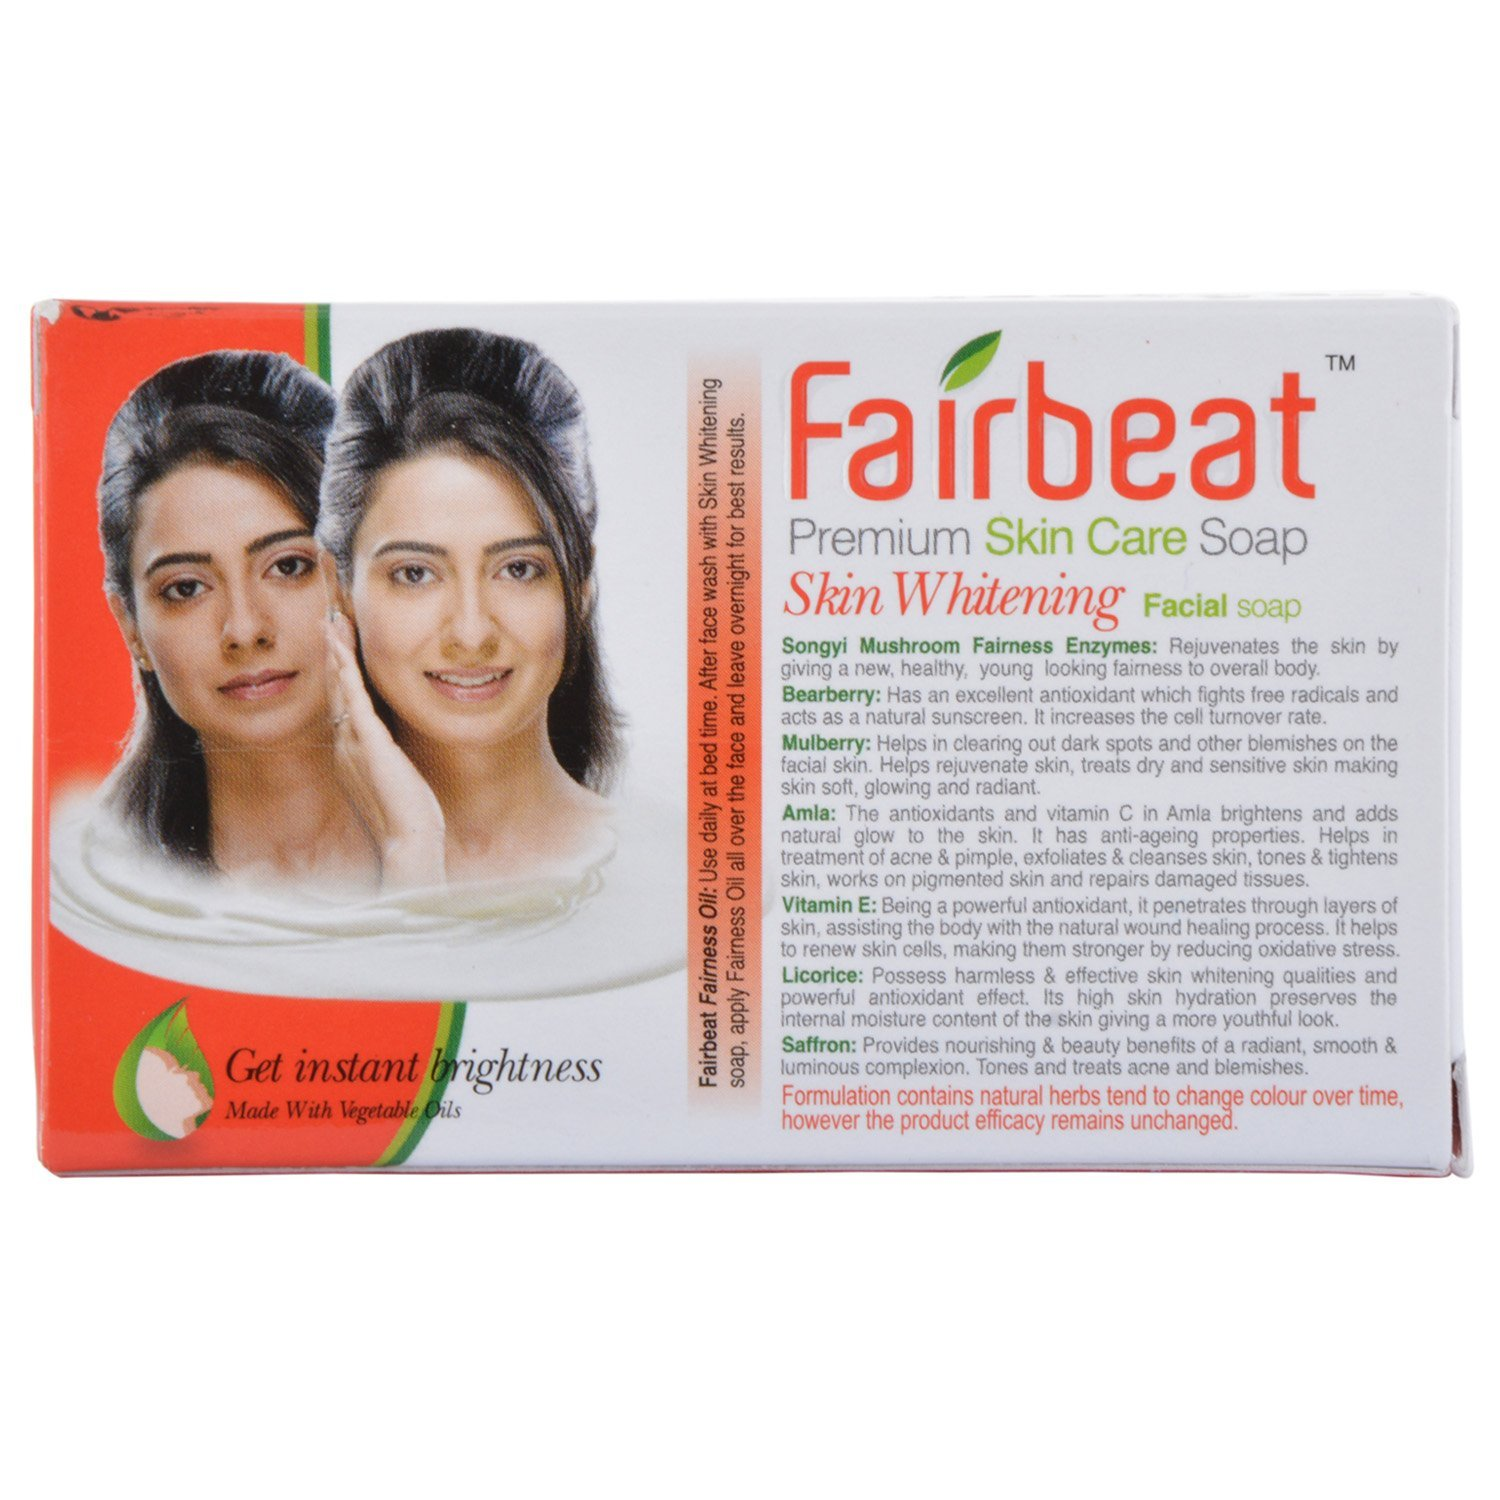 FAIRBEAT SKIN WHITENING SOAP Review, FAIRBEAT SKIN WHITENING